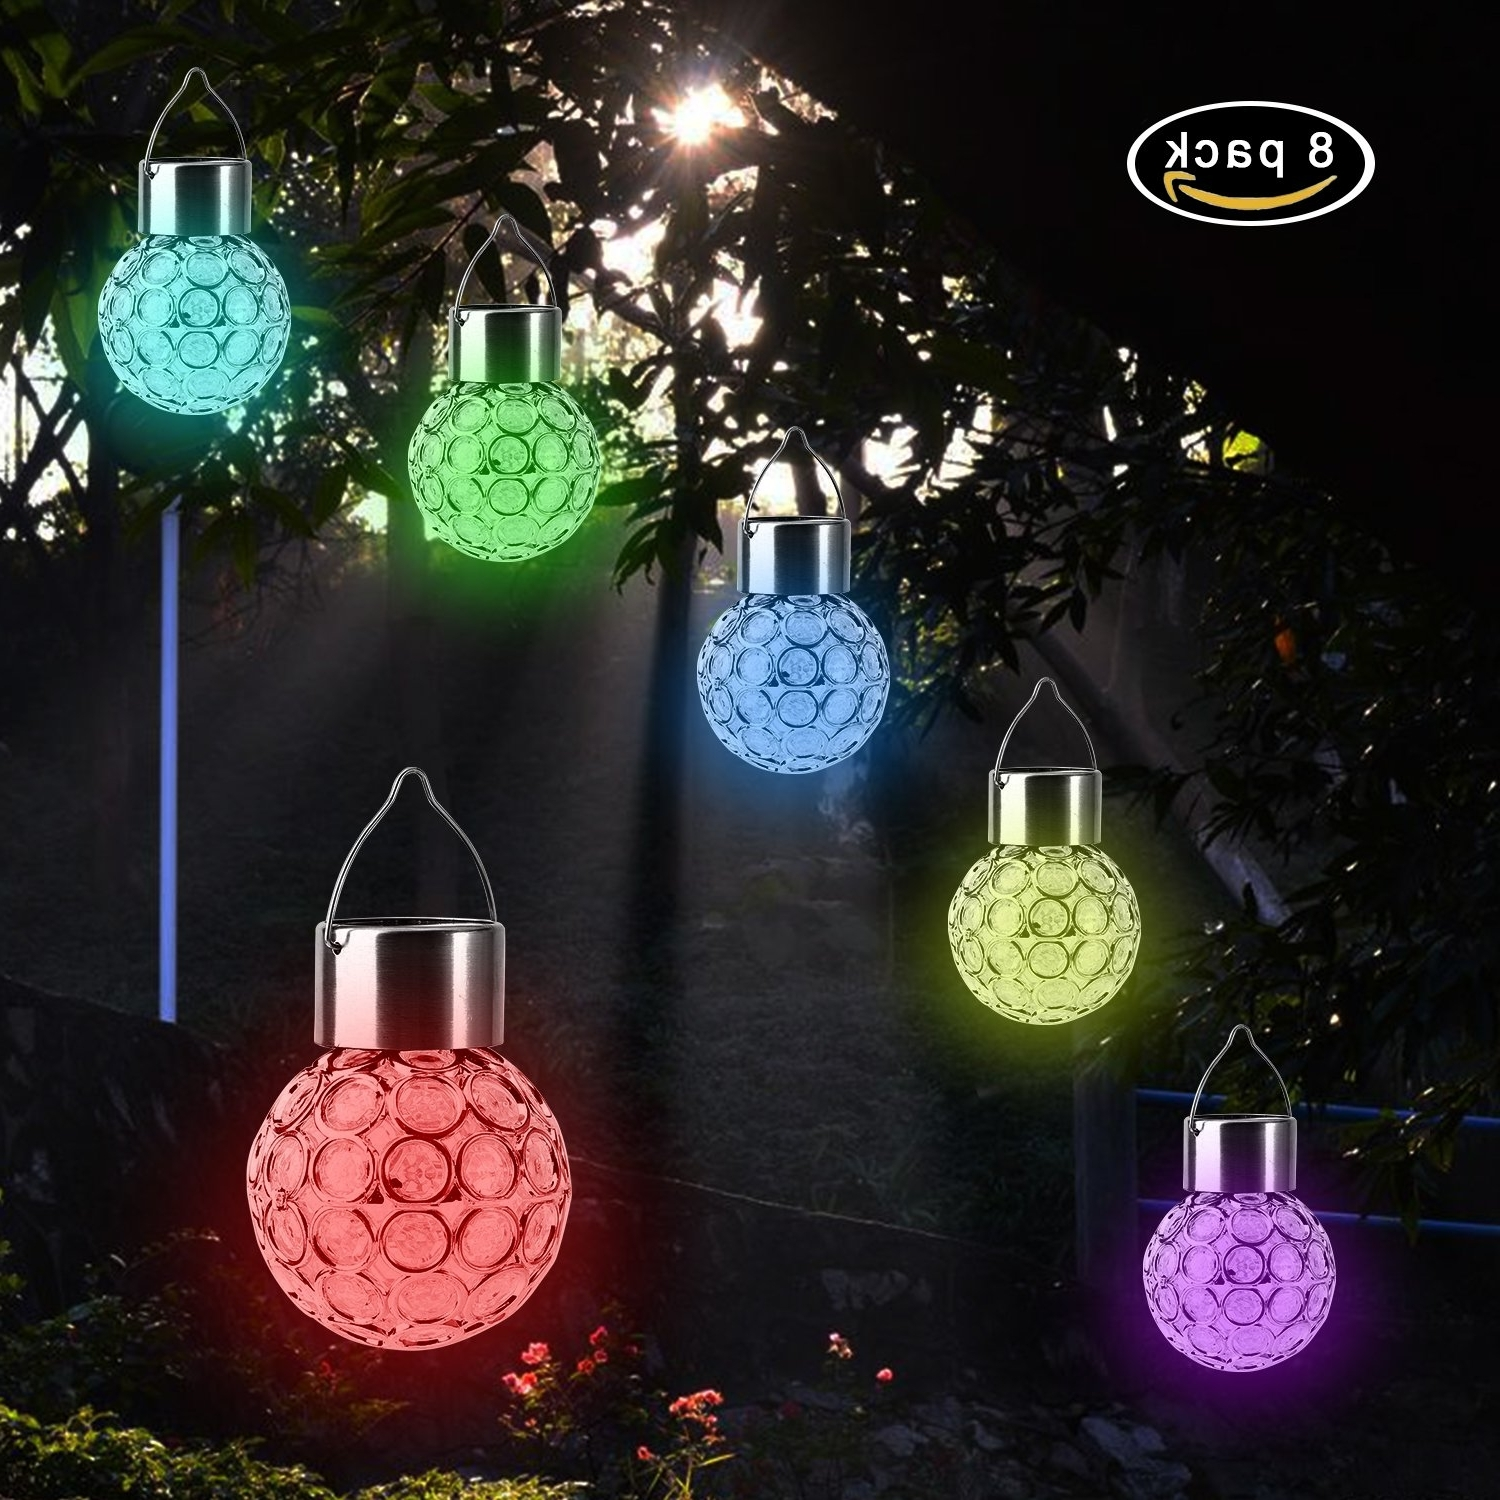 Garden Led Solar Hanging Lights Outdoor (8 Pack), Outdoor Hanging Within Most Recent Outdoor Hanging Nylon Lanterns (View 20 of 20)